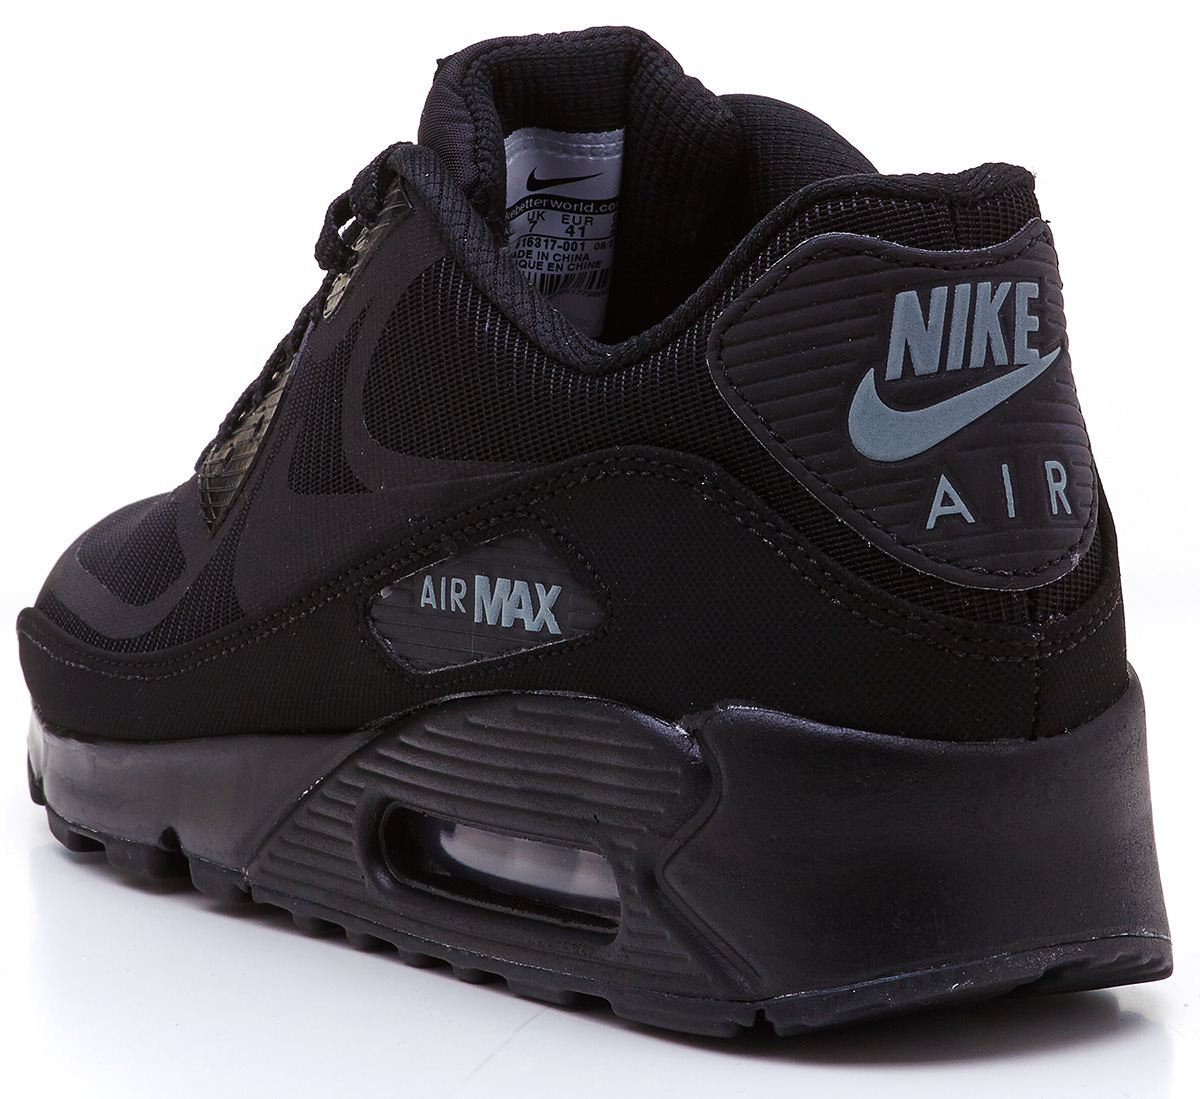 gpety Nike Air Max 90 reflective comfort premium tape black trainers